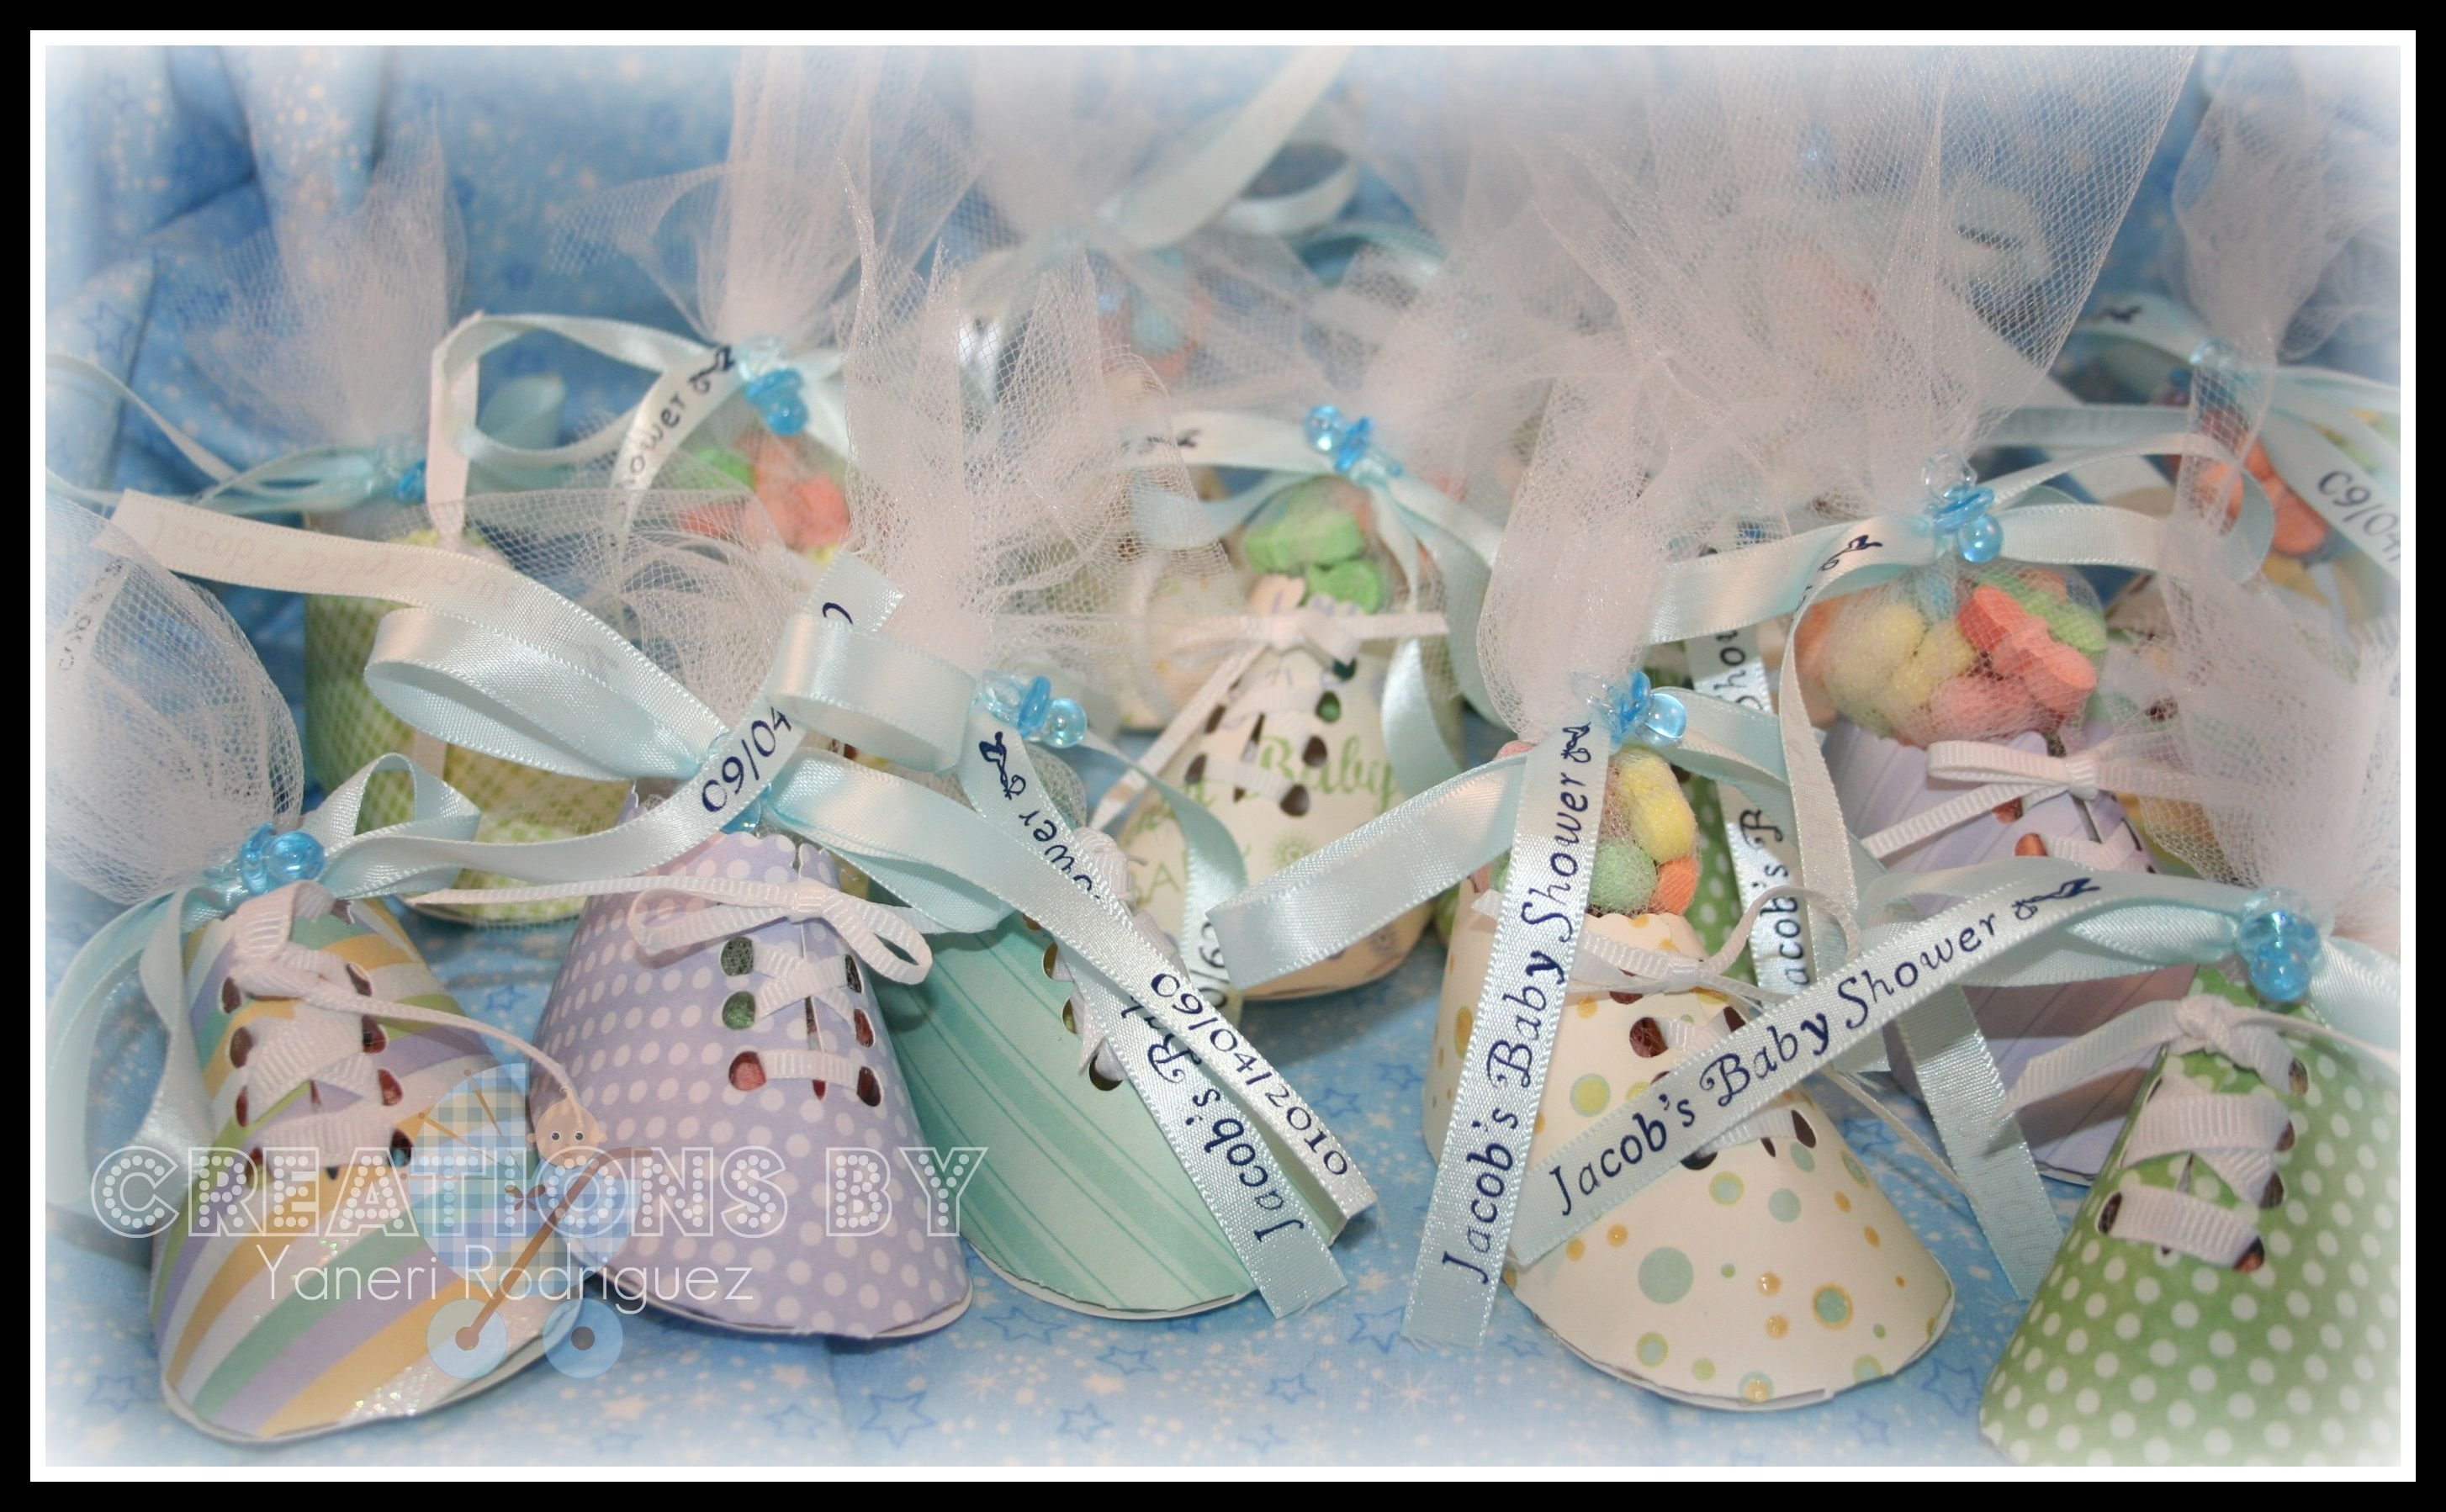 10 Amazing Baby Boy Shower Favors Ideas photo baby shower favors egg image